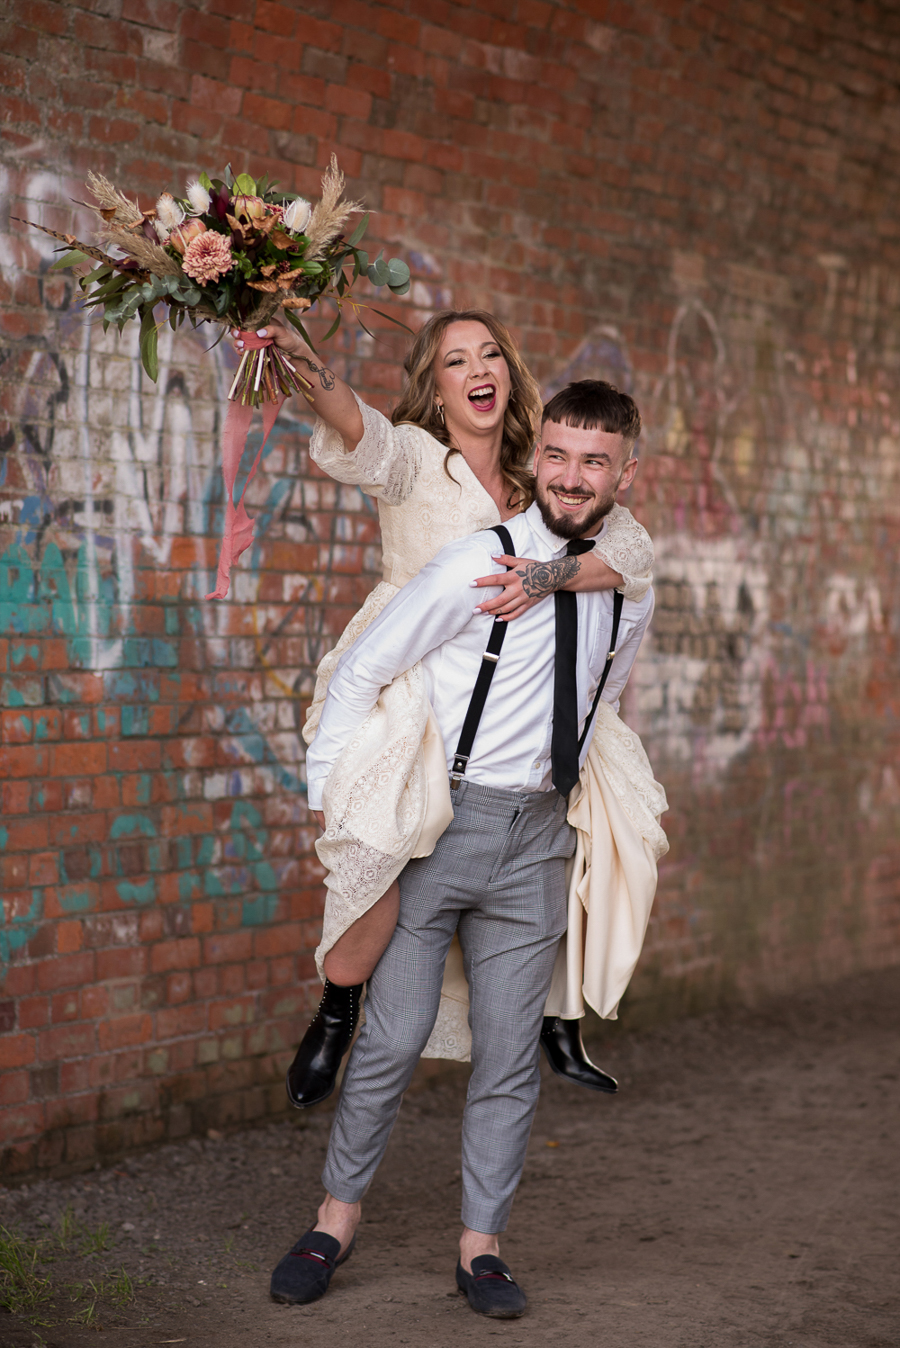 See you at Sunset - a warm autumnal wedding photoshoot with Nicola Belson Photography (41)